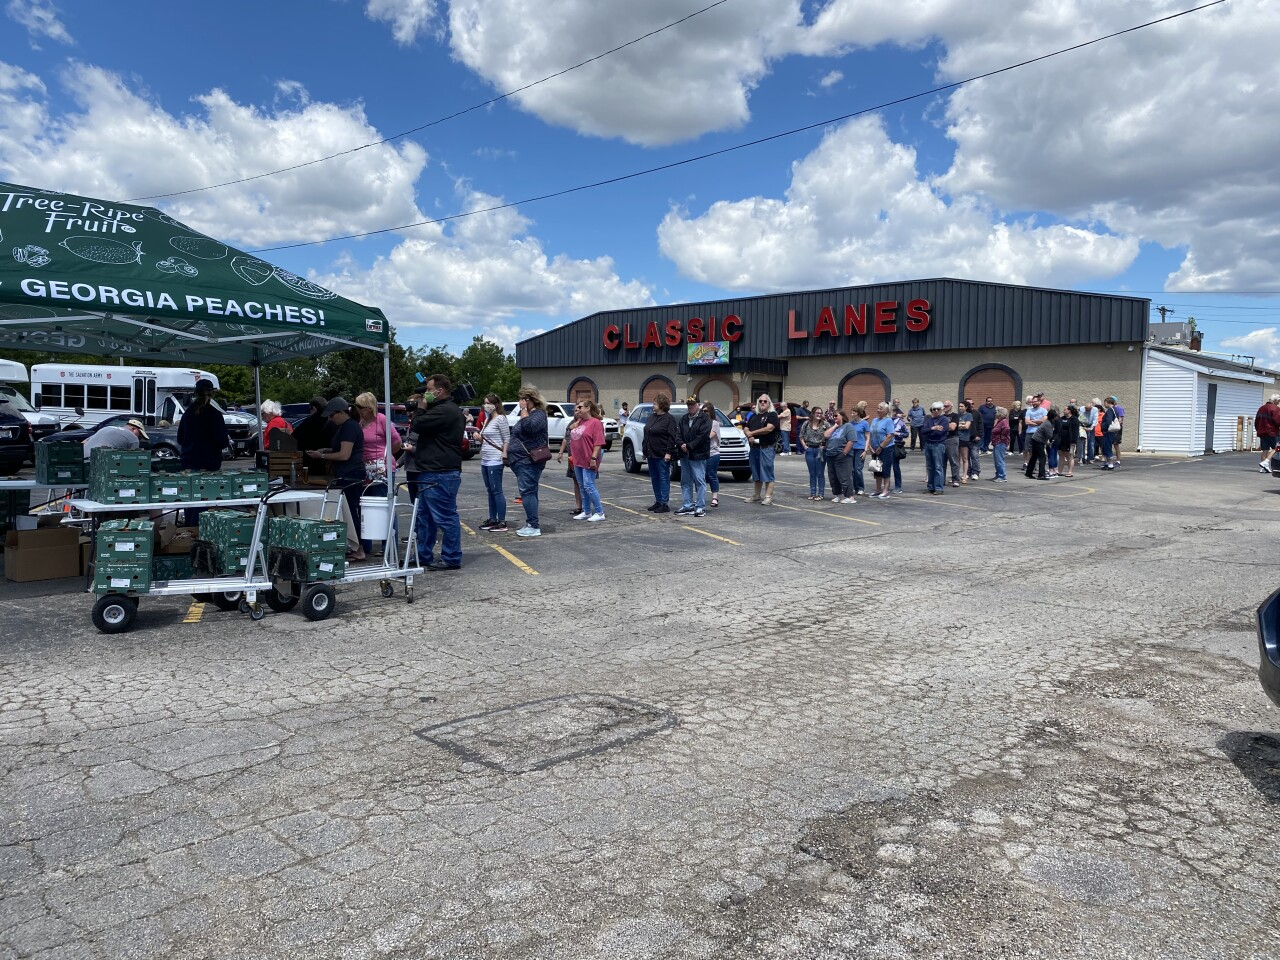 Hundreds stopped by Greenfield for Georgia peaches